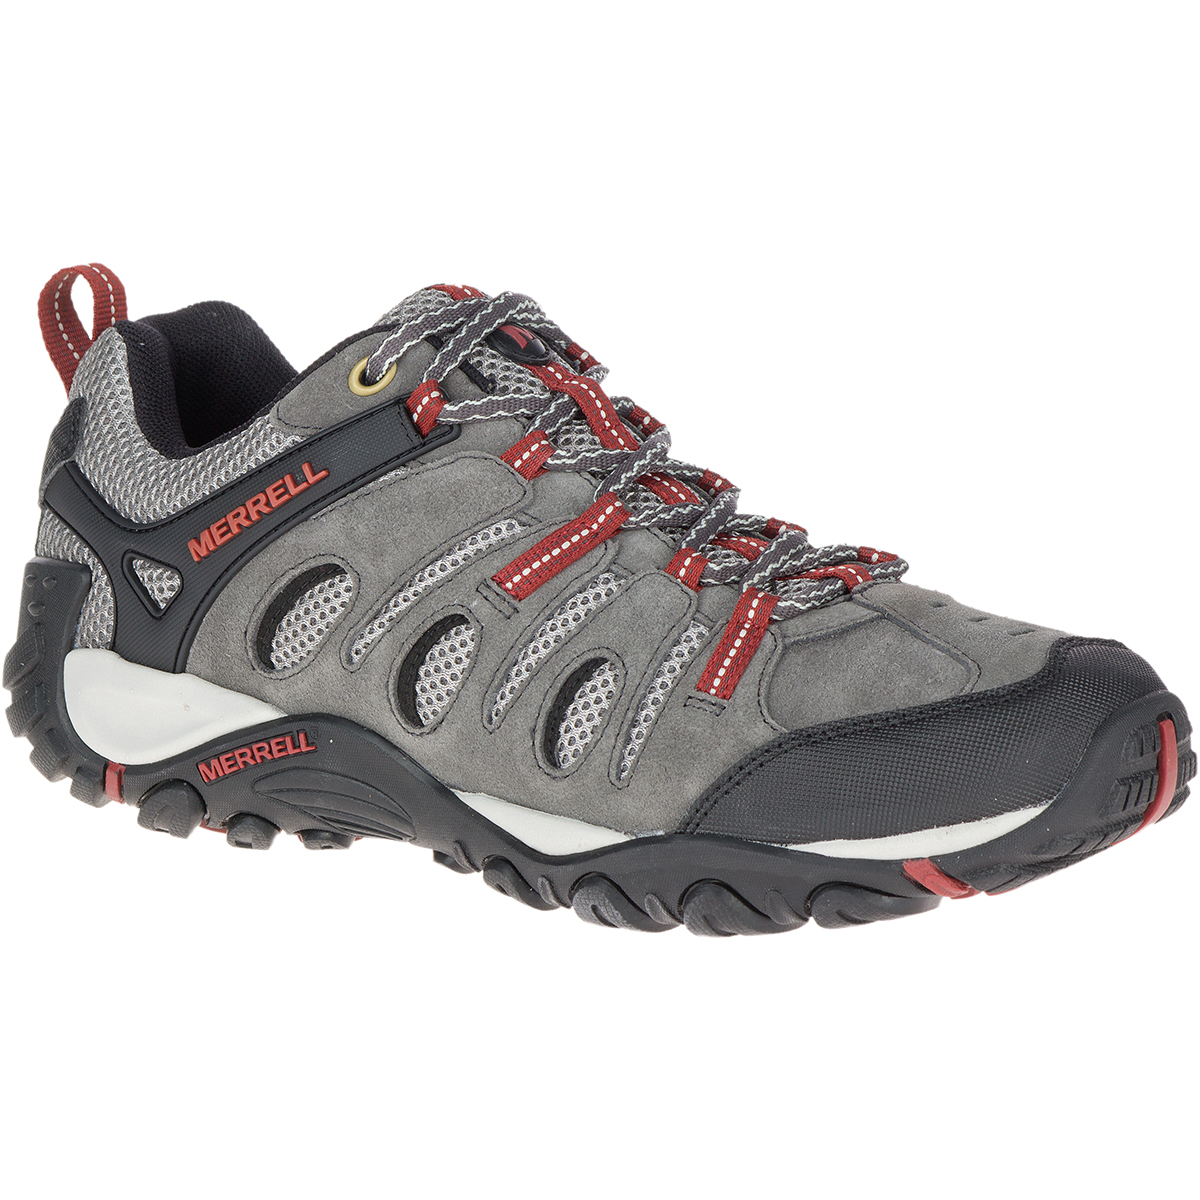 Merrell Men's Crosslander Vent Low Hiking Shoes - Black, 8.5